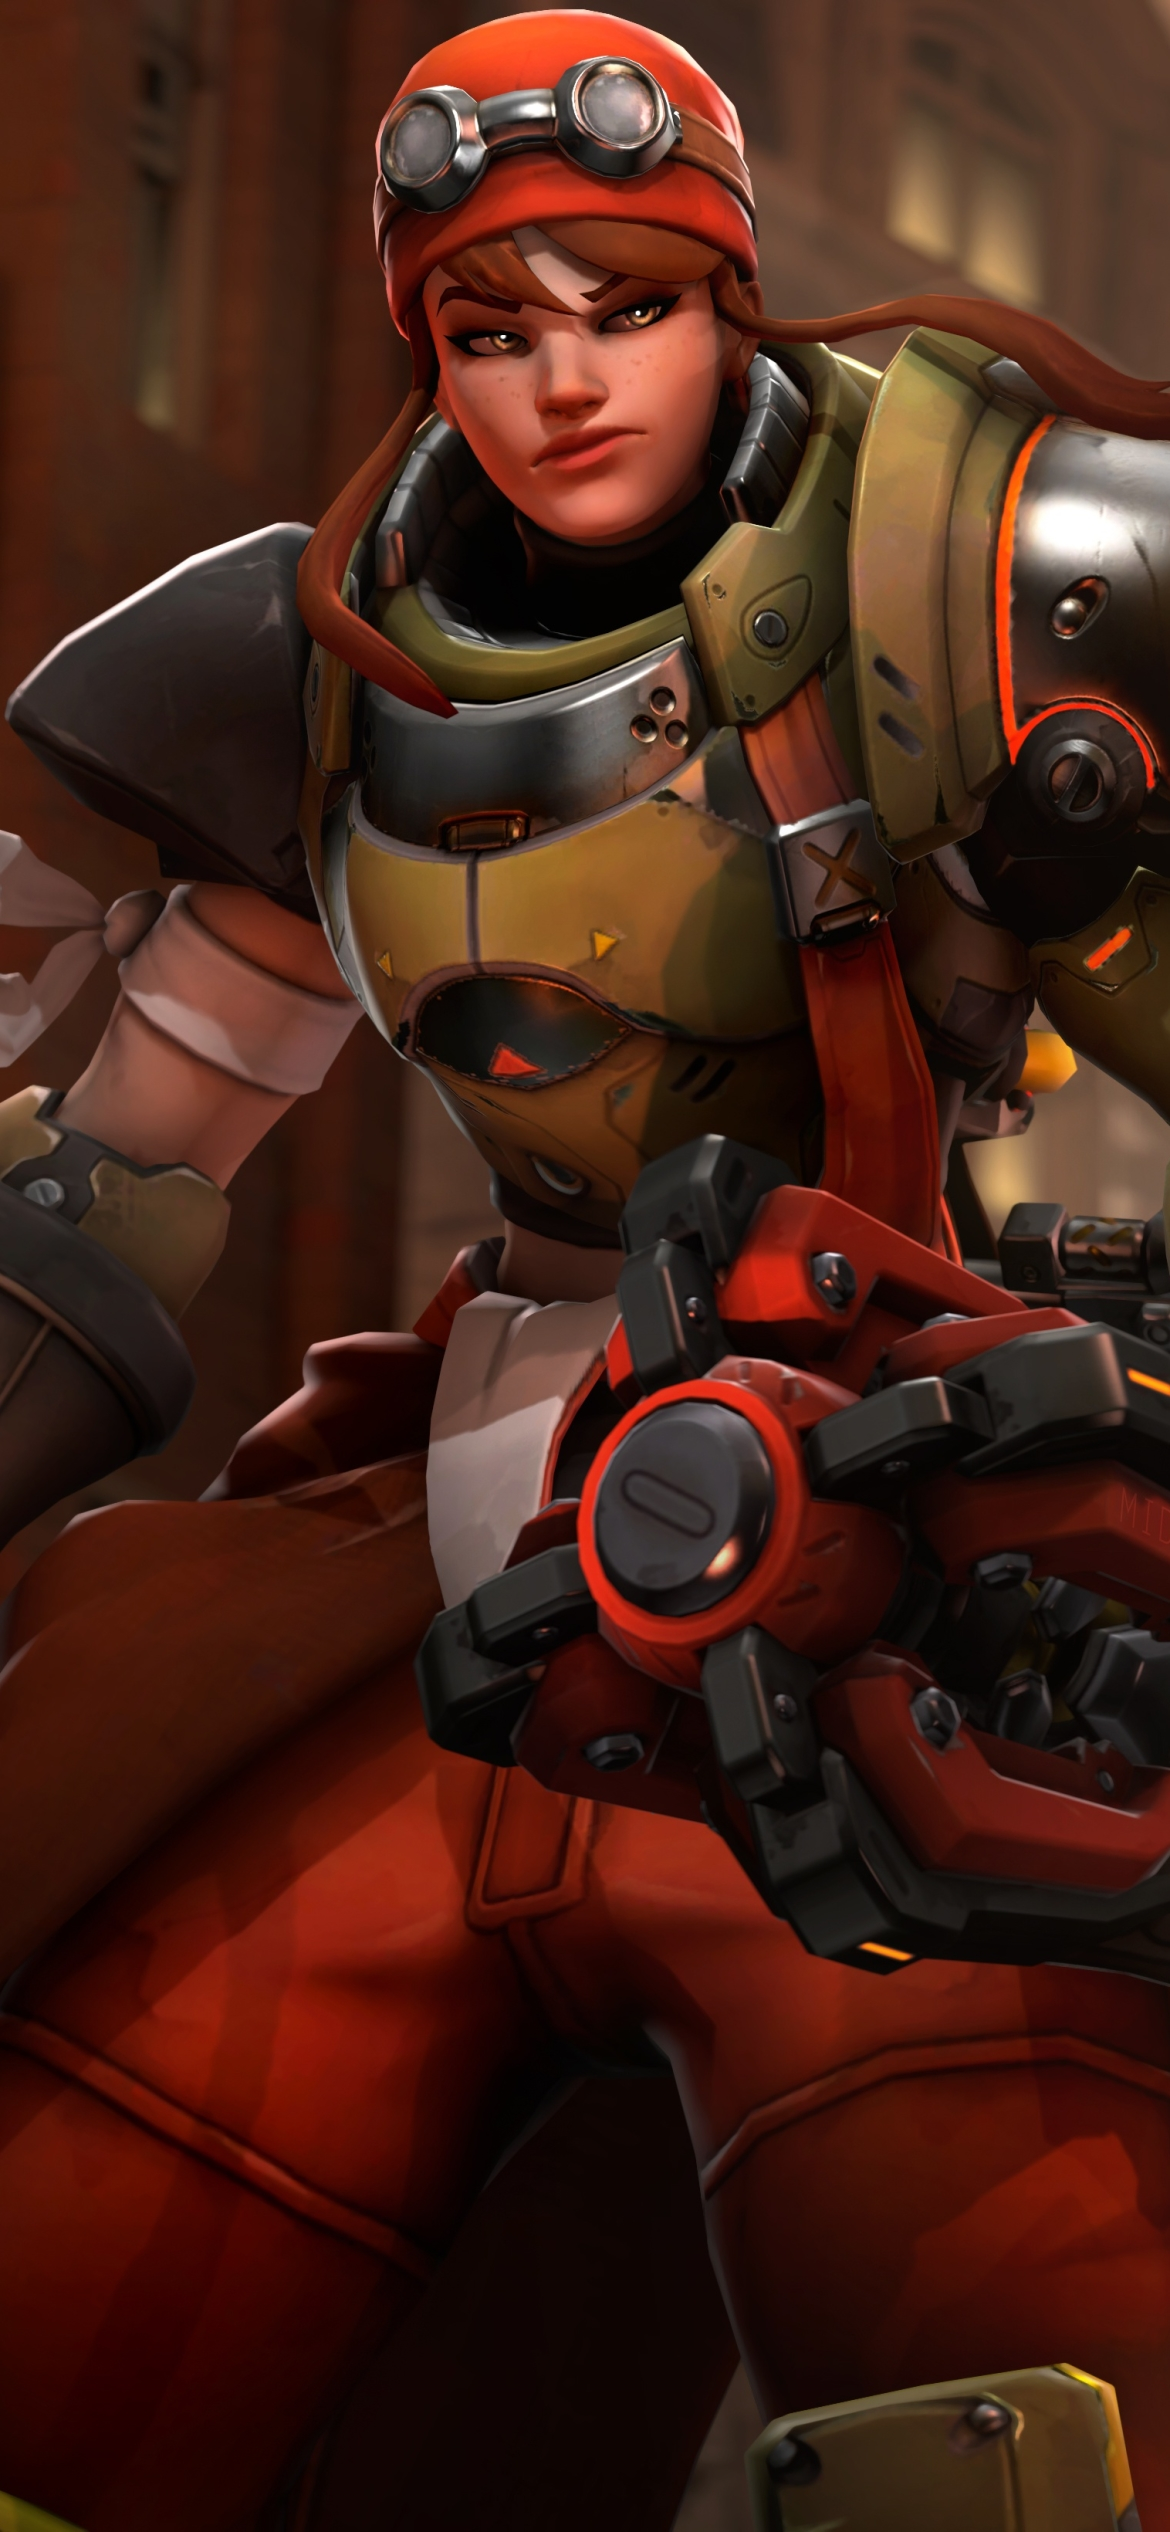 Overwatch Mobile Wallpapers Download Stunning Full Hd Free